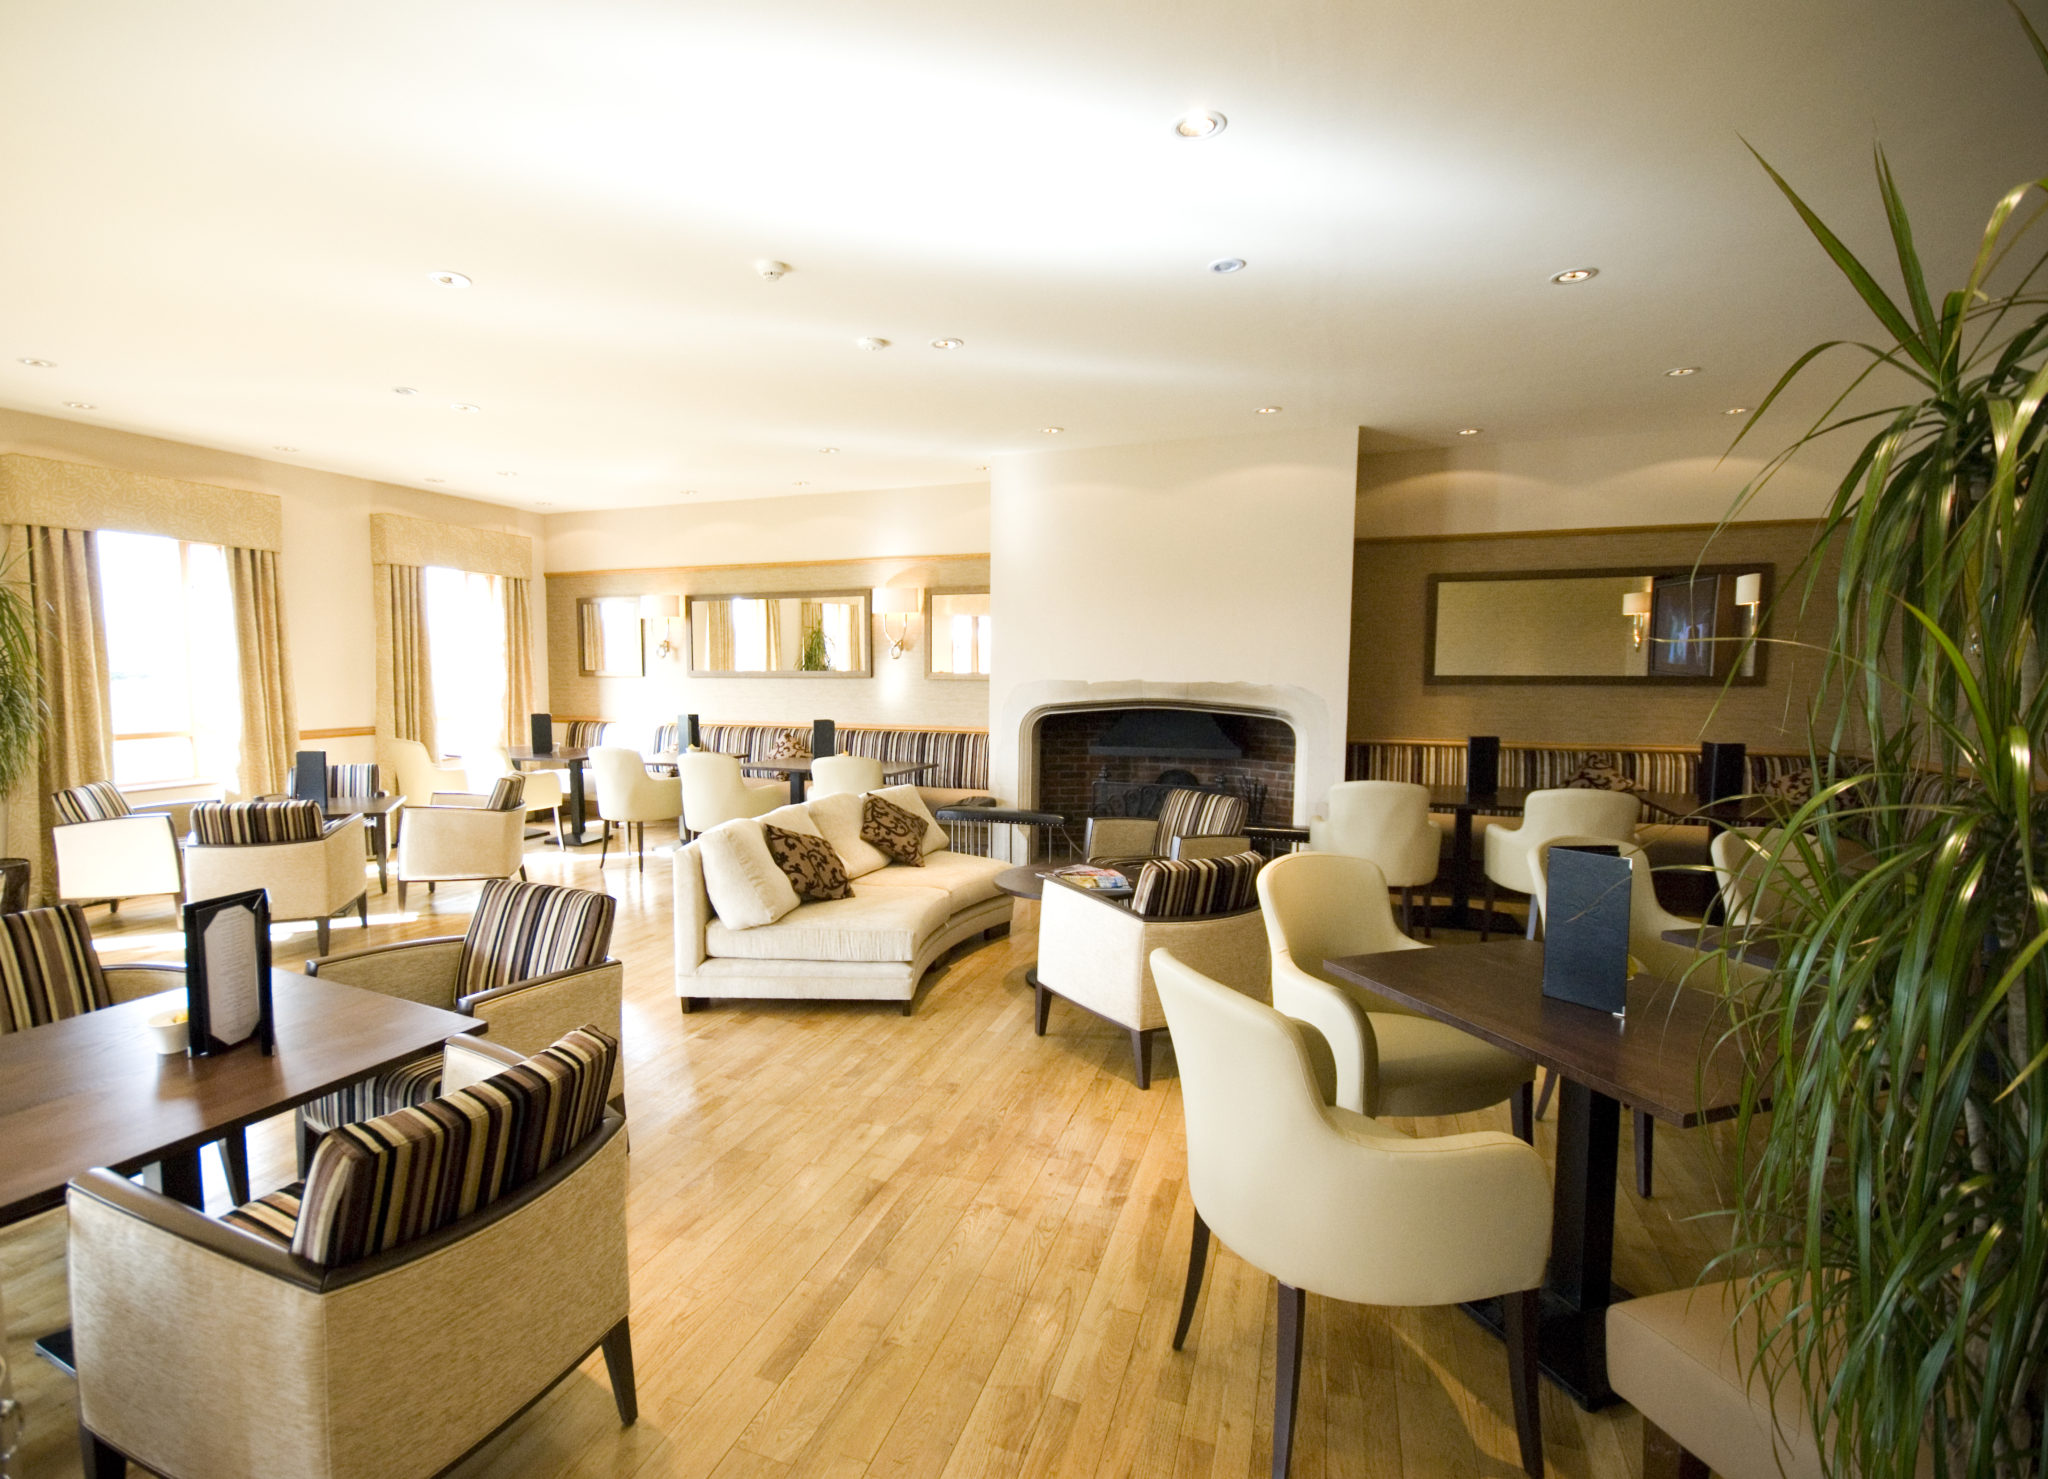 Golf Course Clubhouse Interior Design at Wisley Golf Club